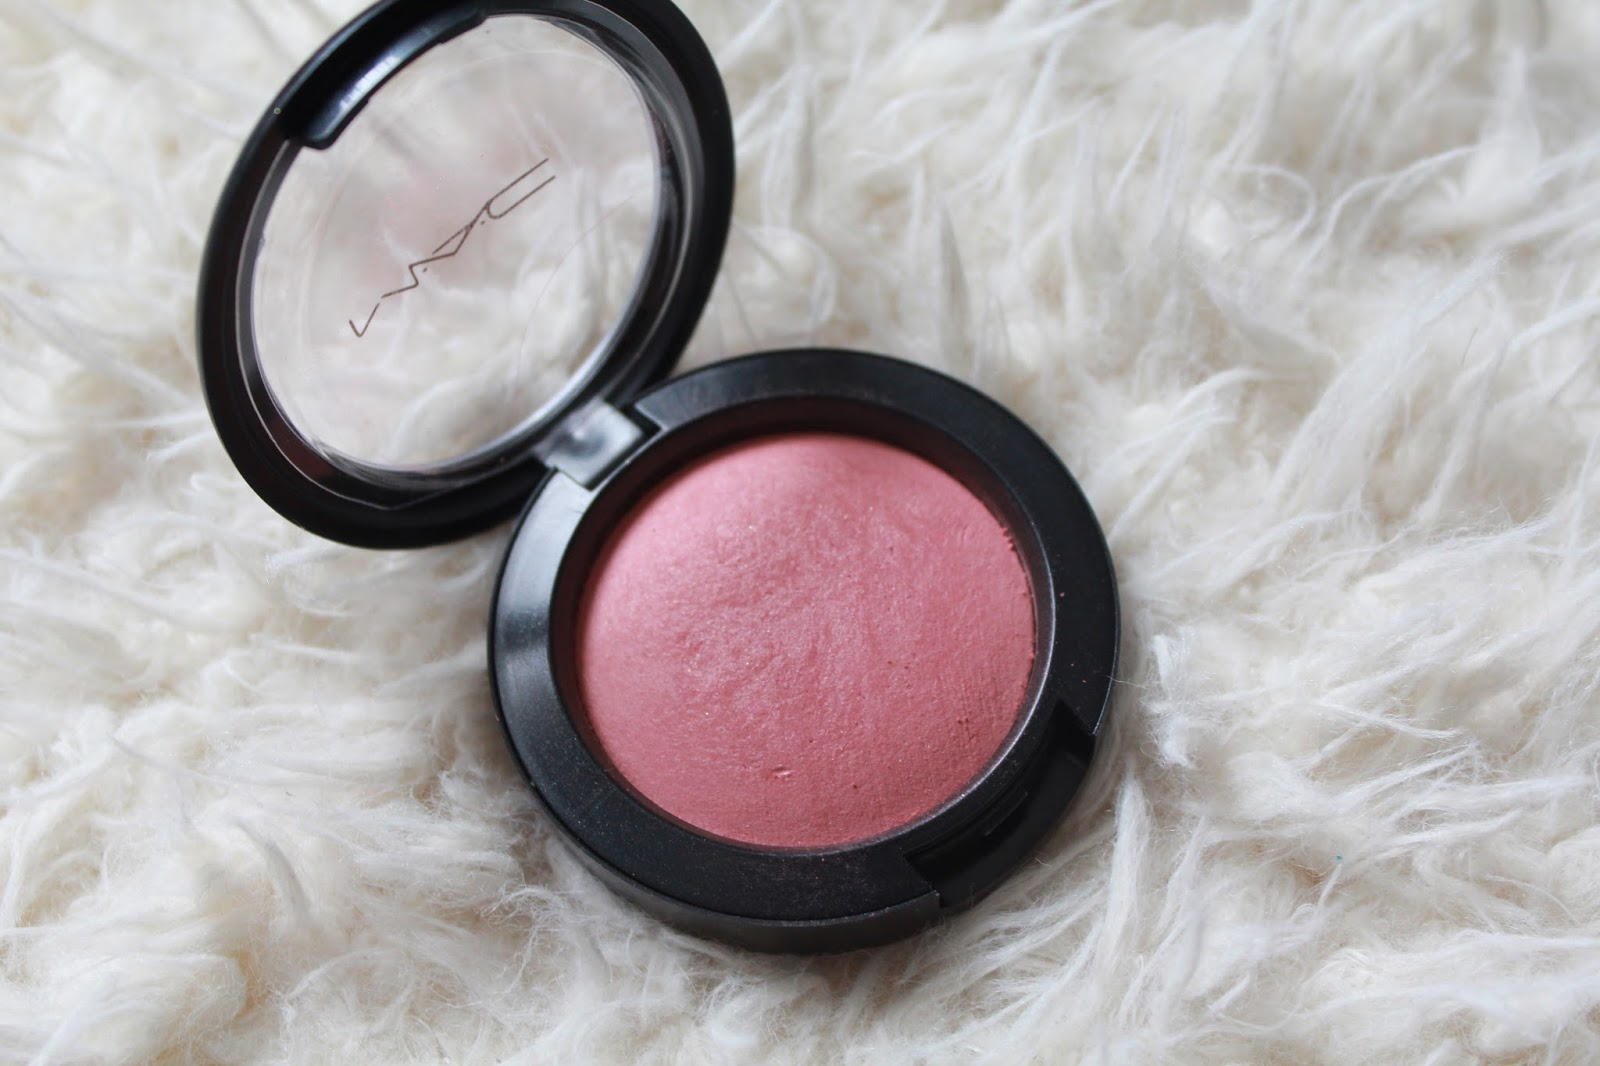 Mac Mineralise Blush In Dainty